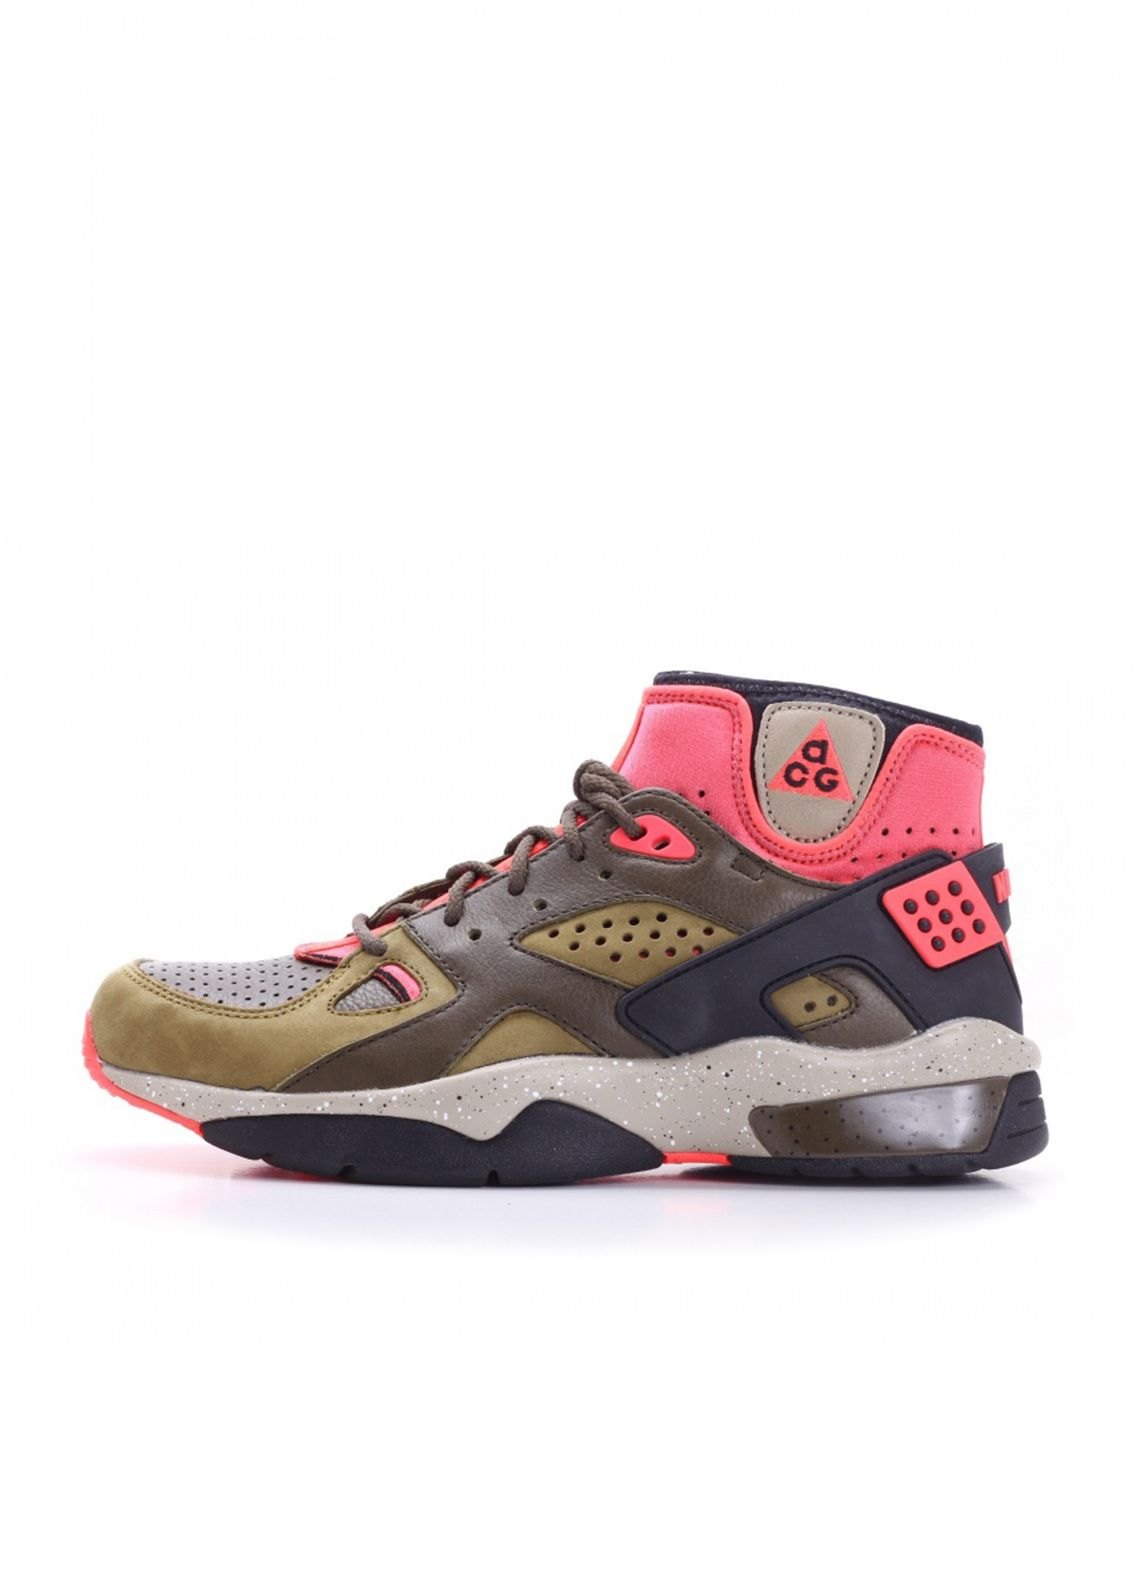 competitive price 8be70 9468f Nike ACG Air Mowabb  Militia Green